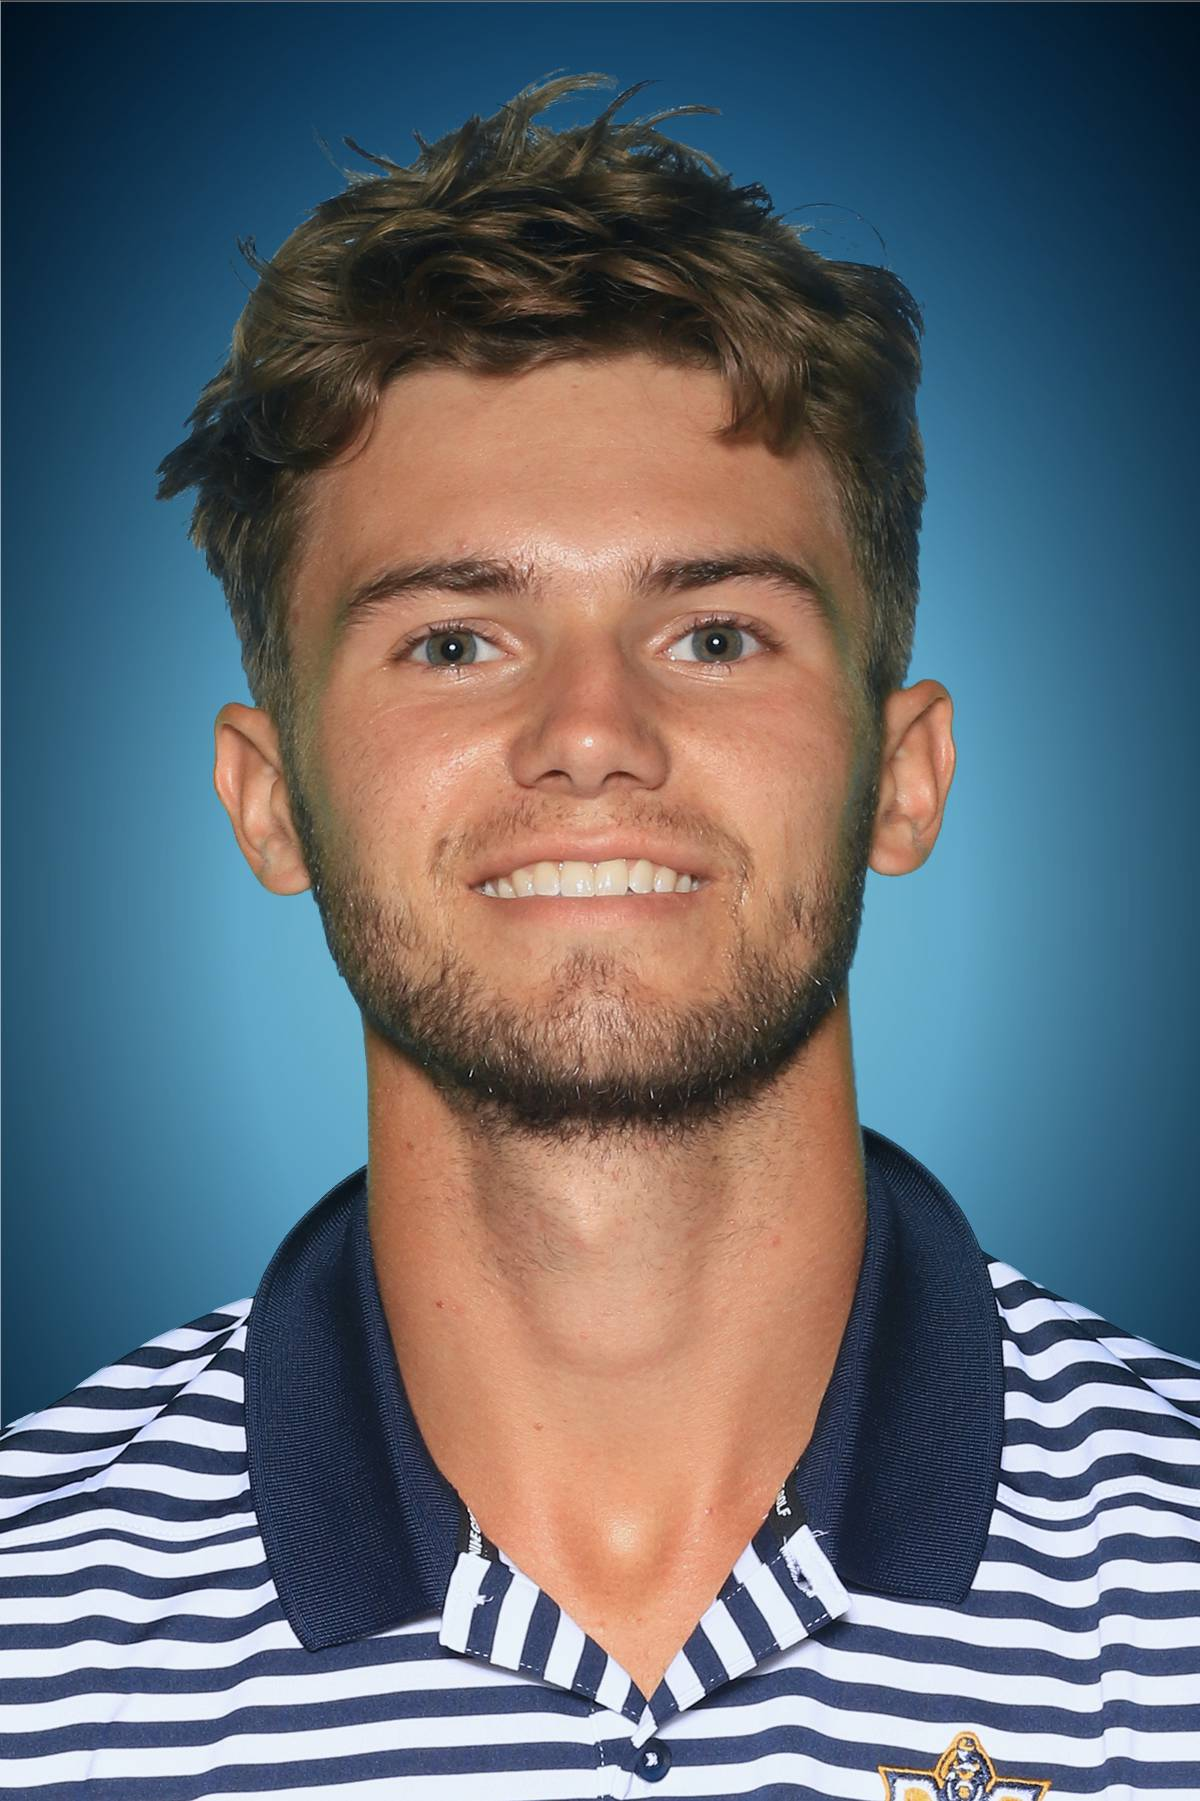 James Boone Men S Golf Murray State University Athletics Never miss another show from hunter james boone. james boone men s golf murray state